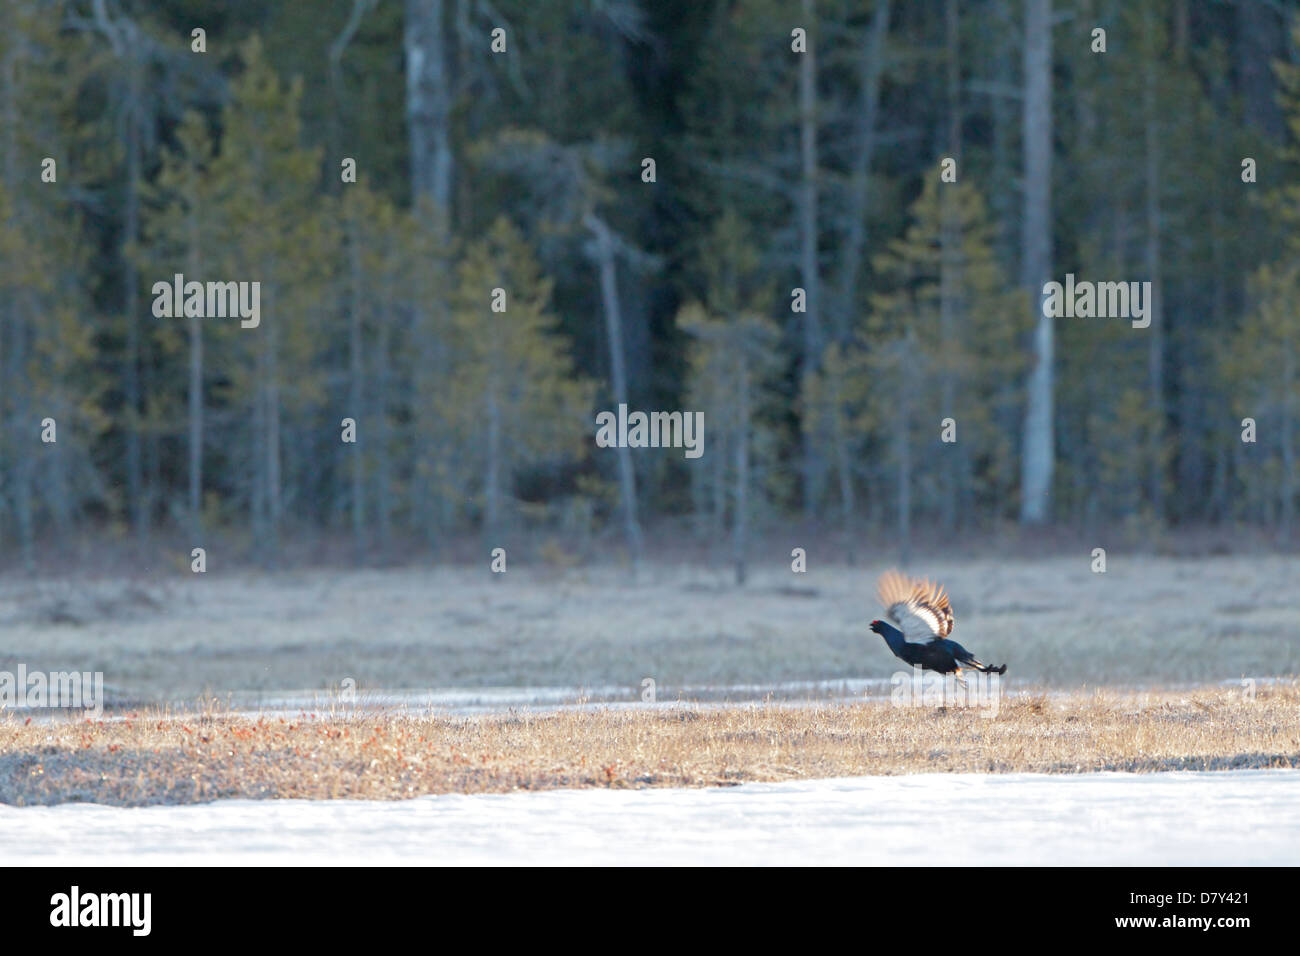 Male Black Grouse flying at a lek in Finland - Stock Image